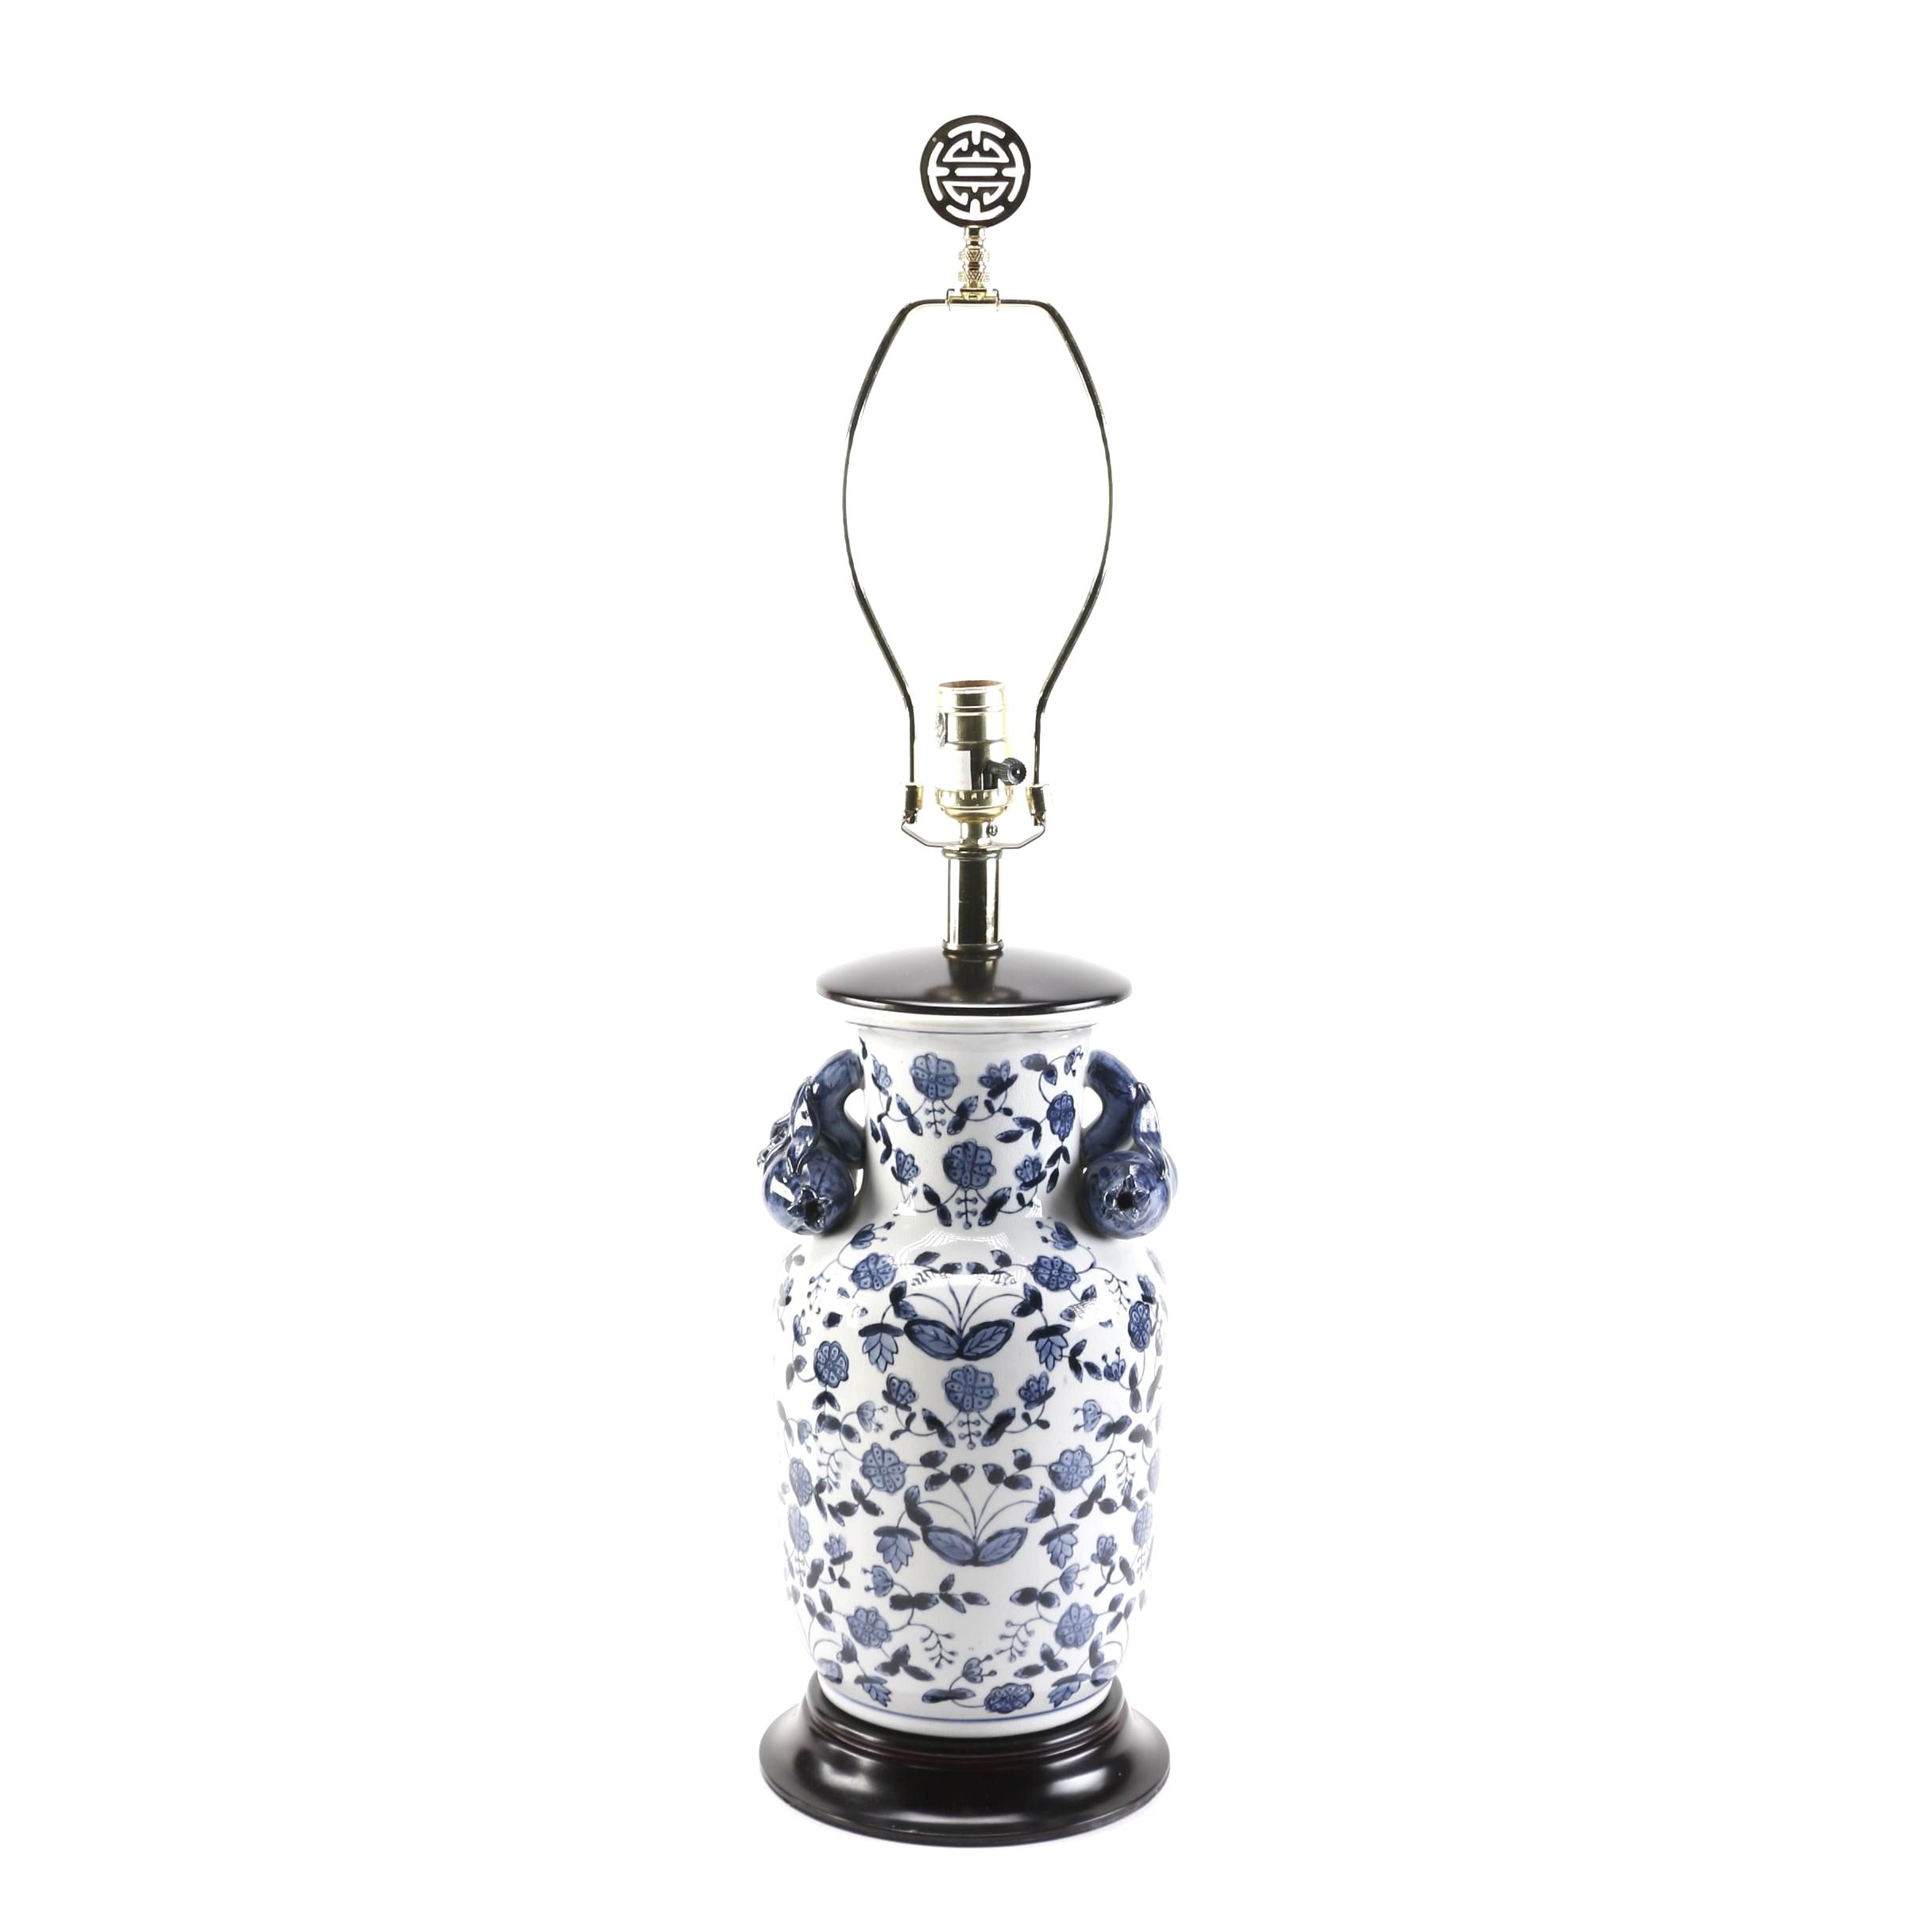 Chinese Blue and White Ceramic Table Lamp